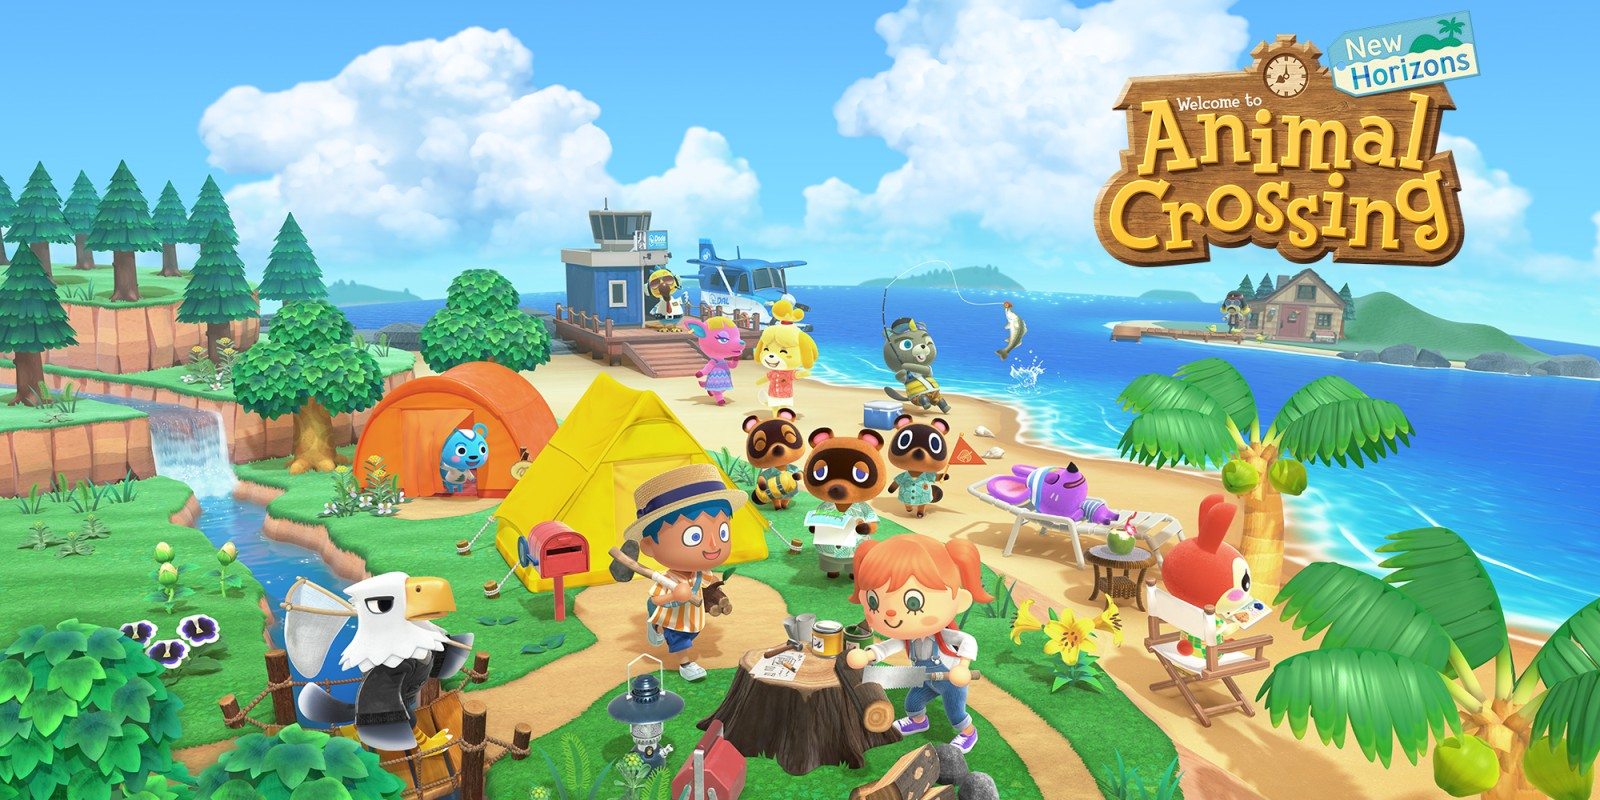 A Vacation Well Spent in Animal Crossing: New Horizons